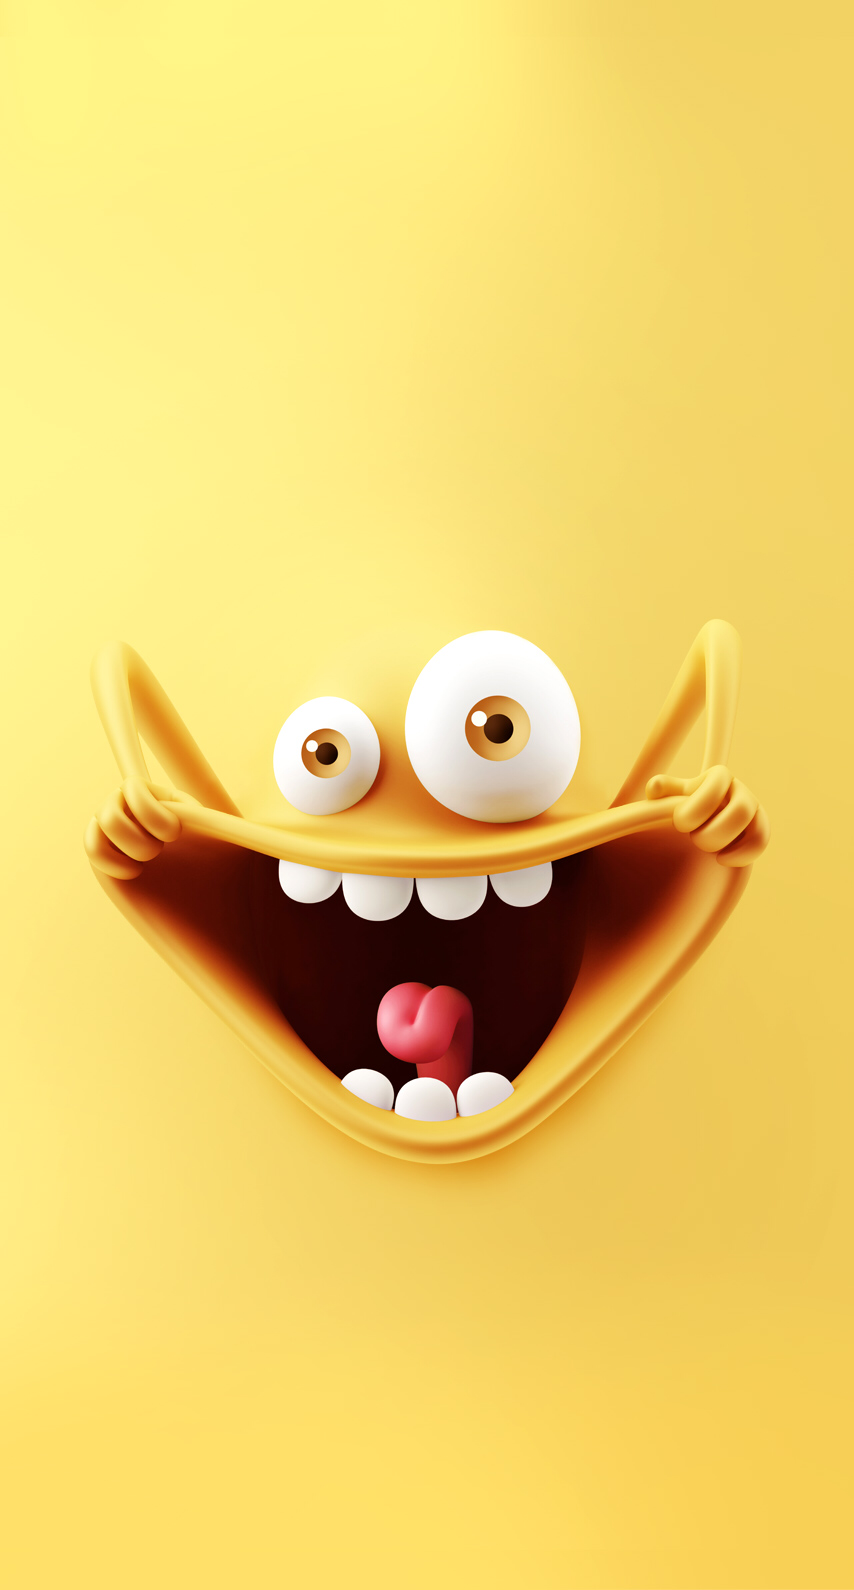 Pin by Keywebco Network on Cartoon | Wallpaper iphone cute ...